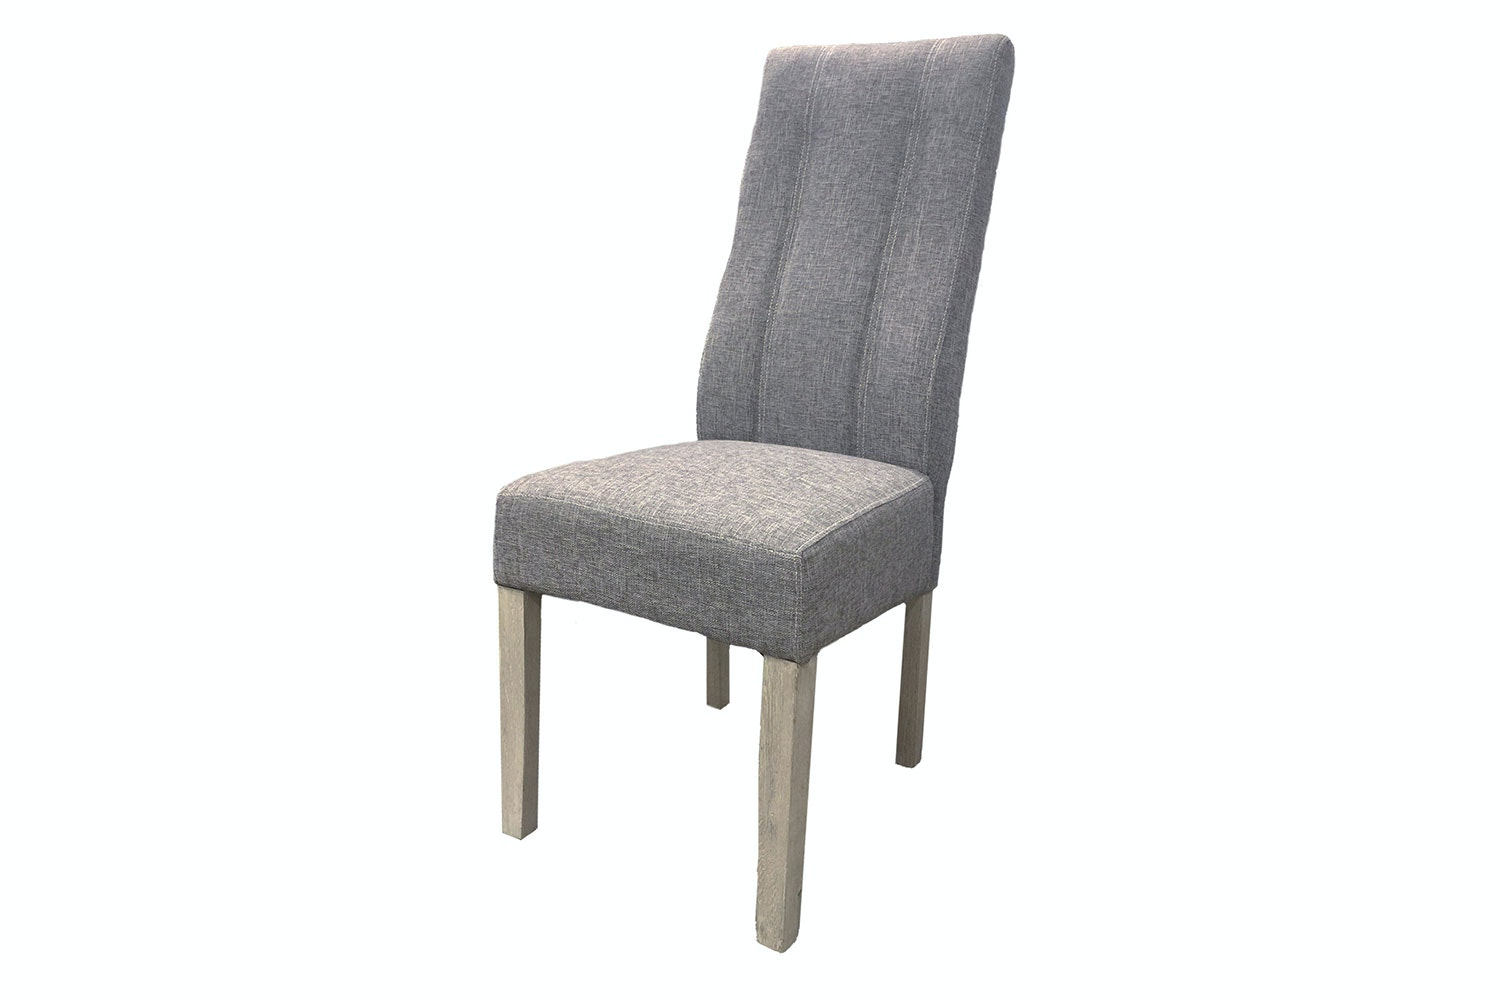 Dining Chairs Harvey Norman Albury Dining Chair By  : ED CH02 from amlibgroup.com size 785 x 523 jpeg 12kB